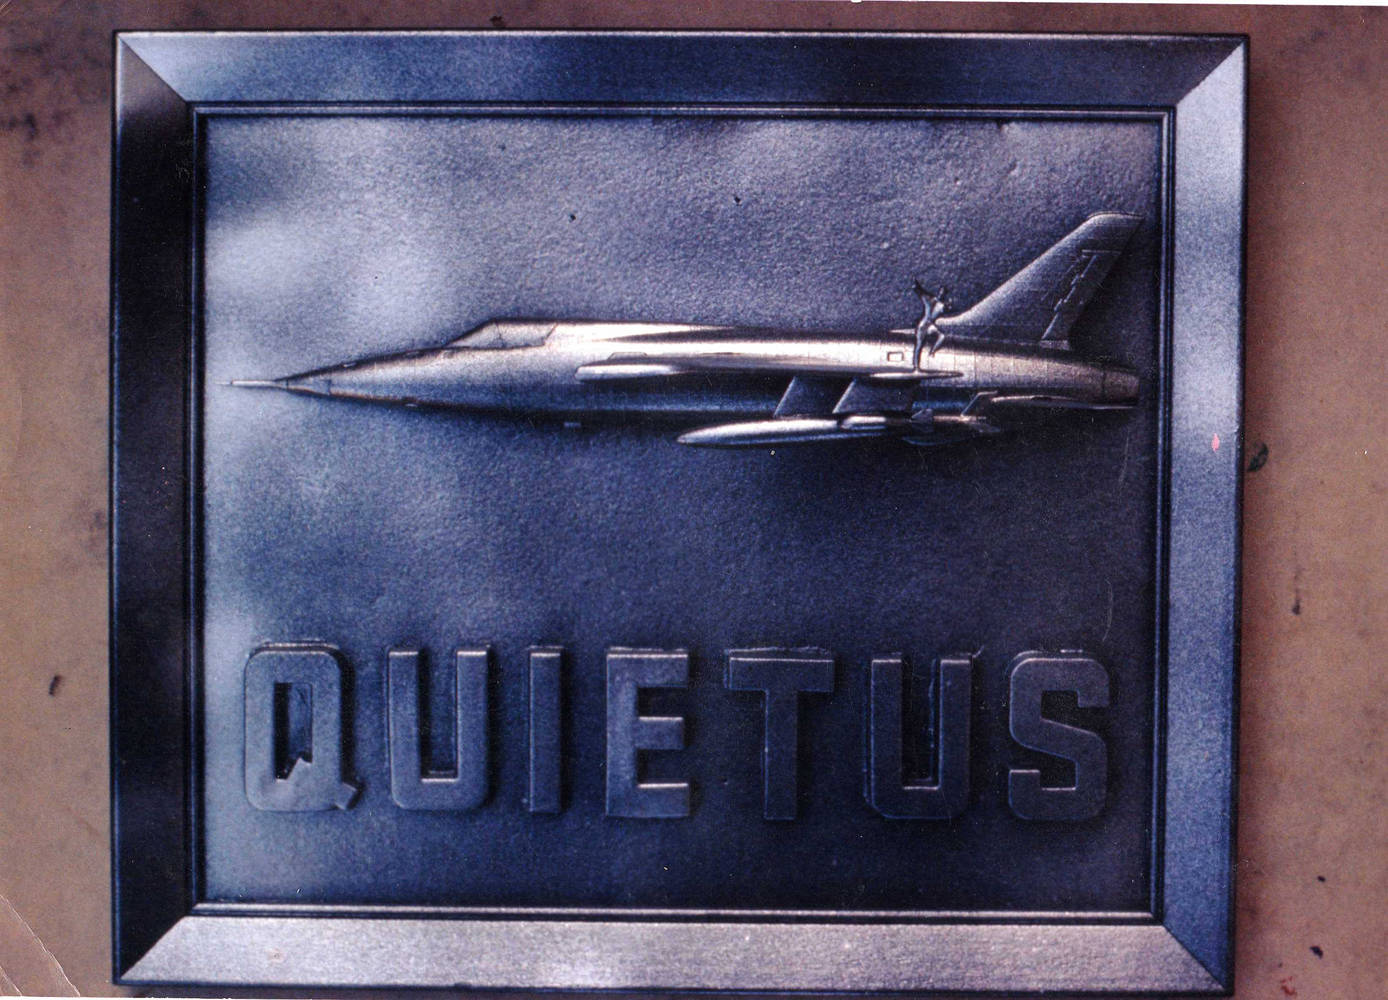 Quietus by Ron Crowcroft